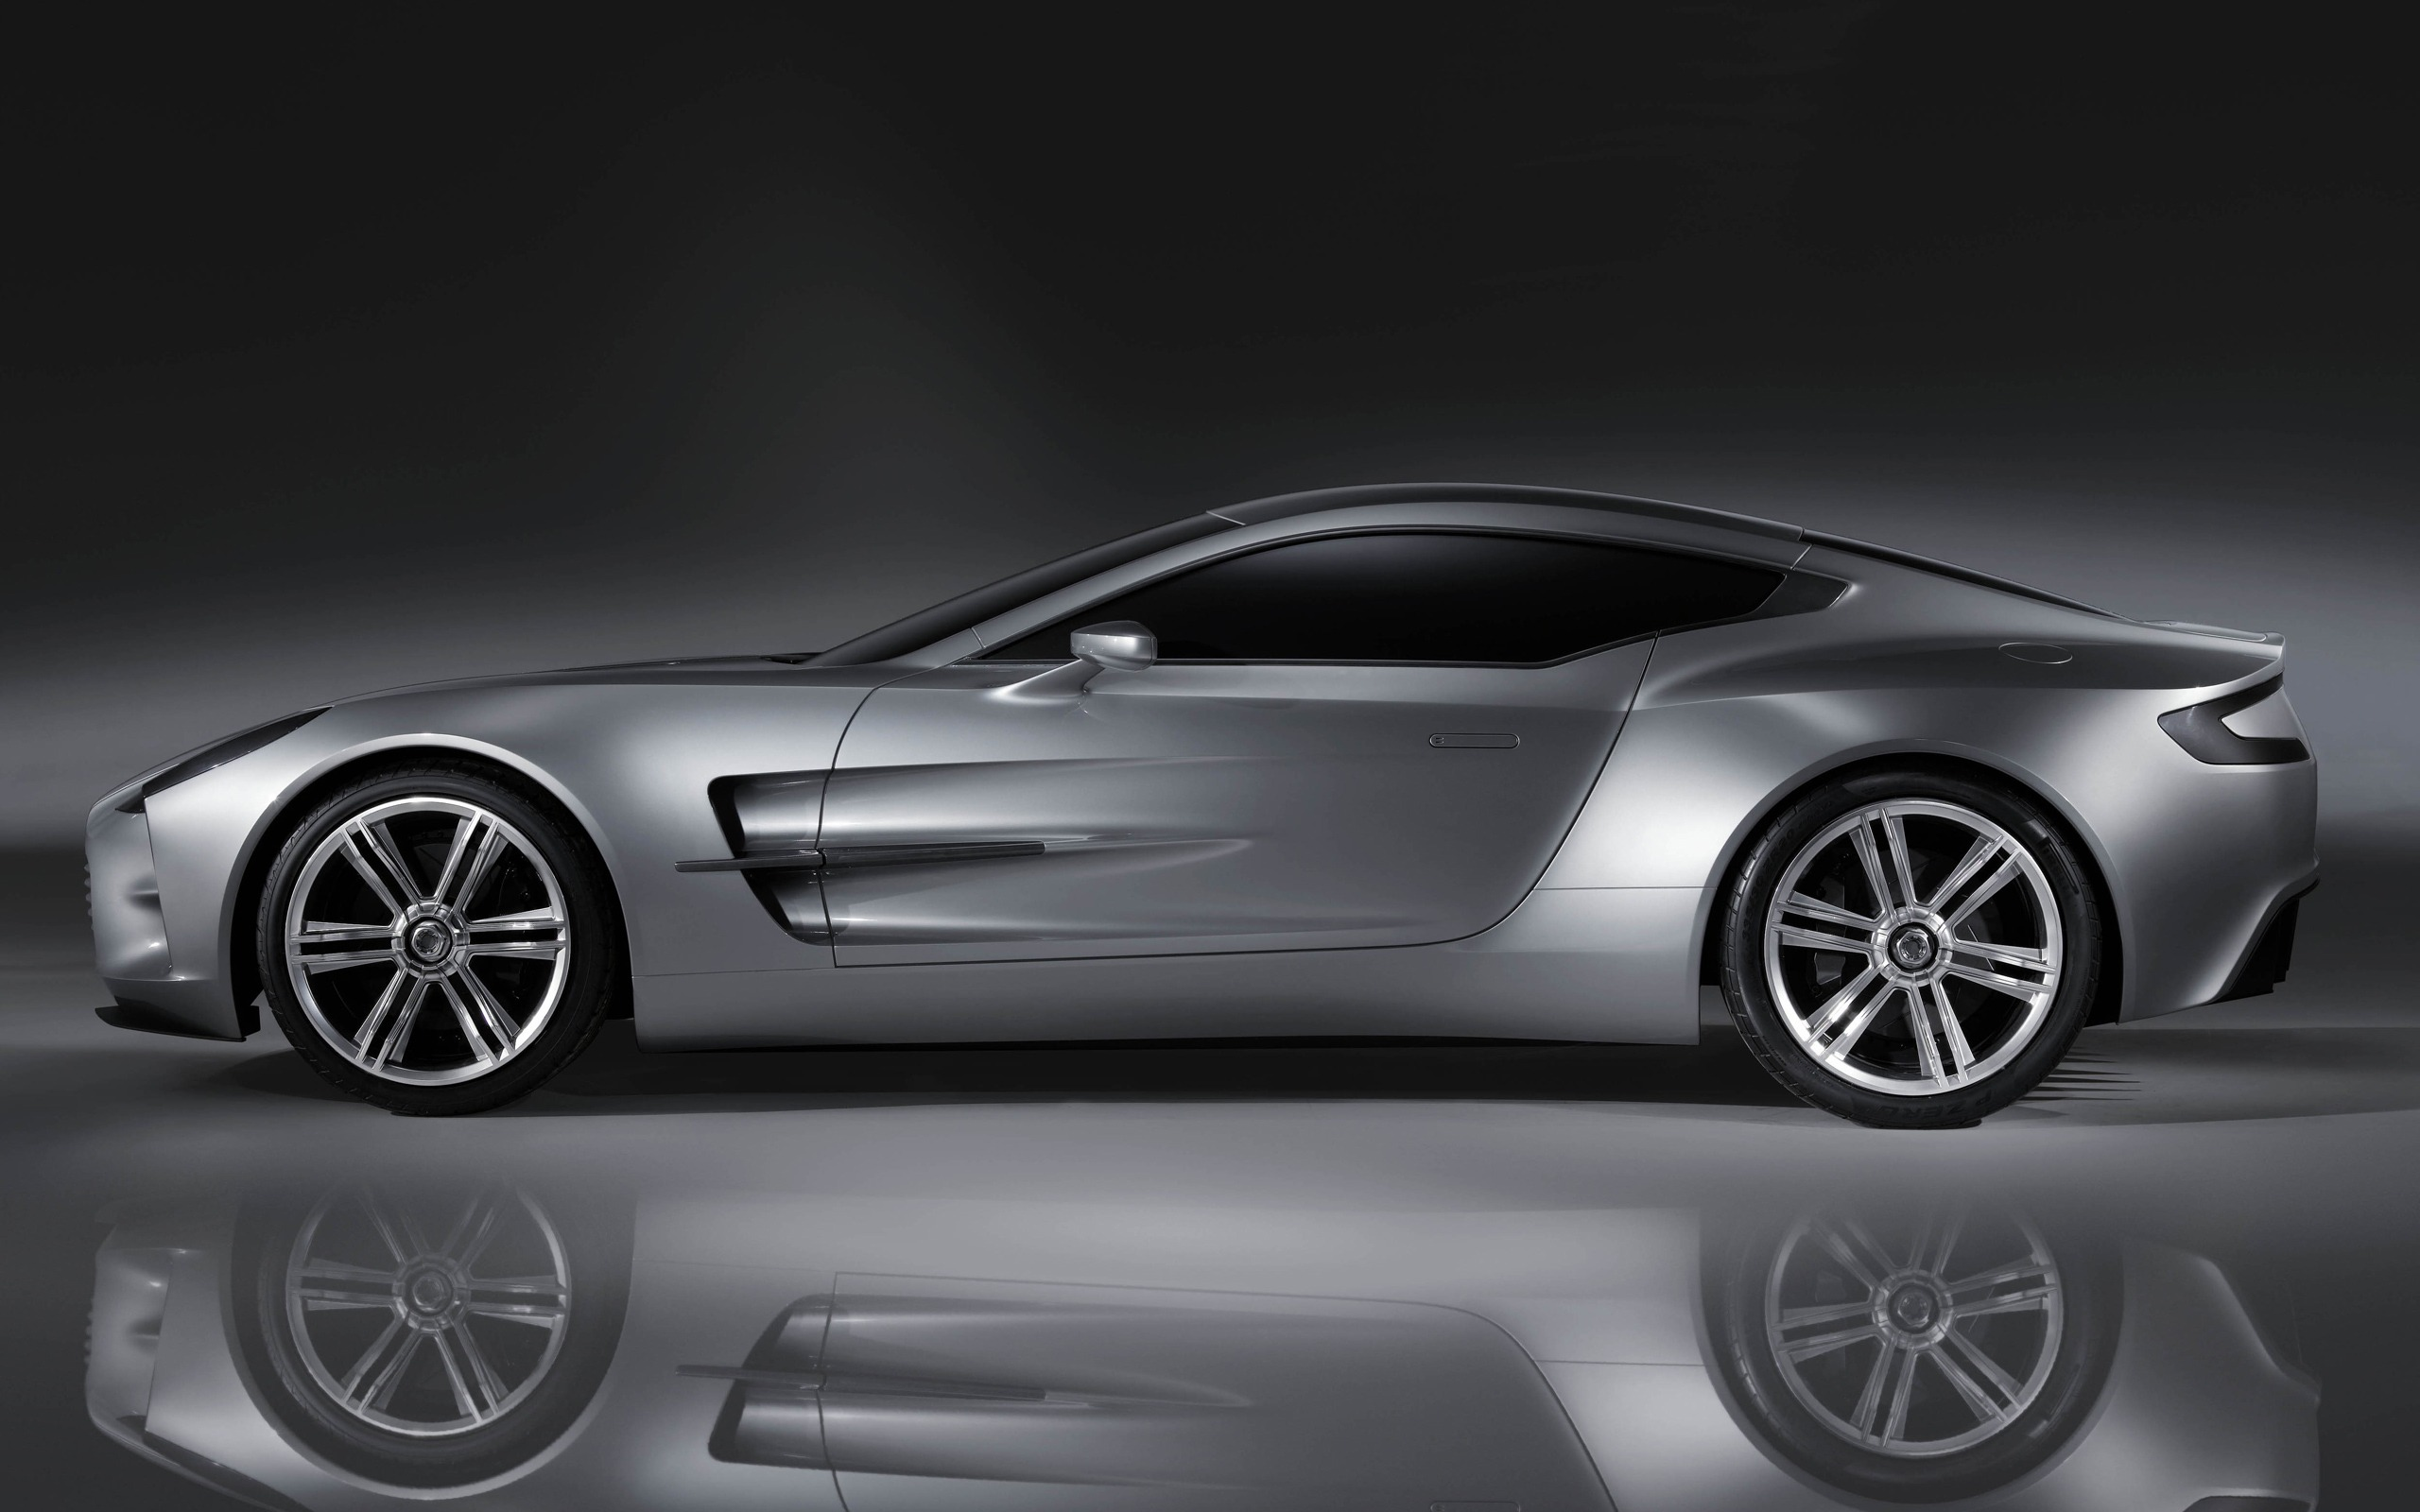 Merveilleux One 77 Wallpaper Aston Martin Cars Wallpapers